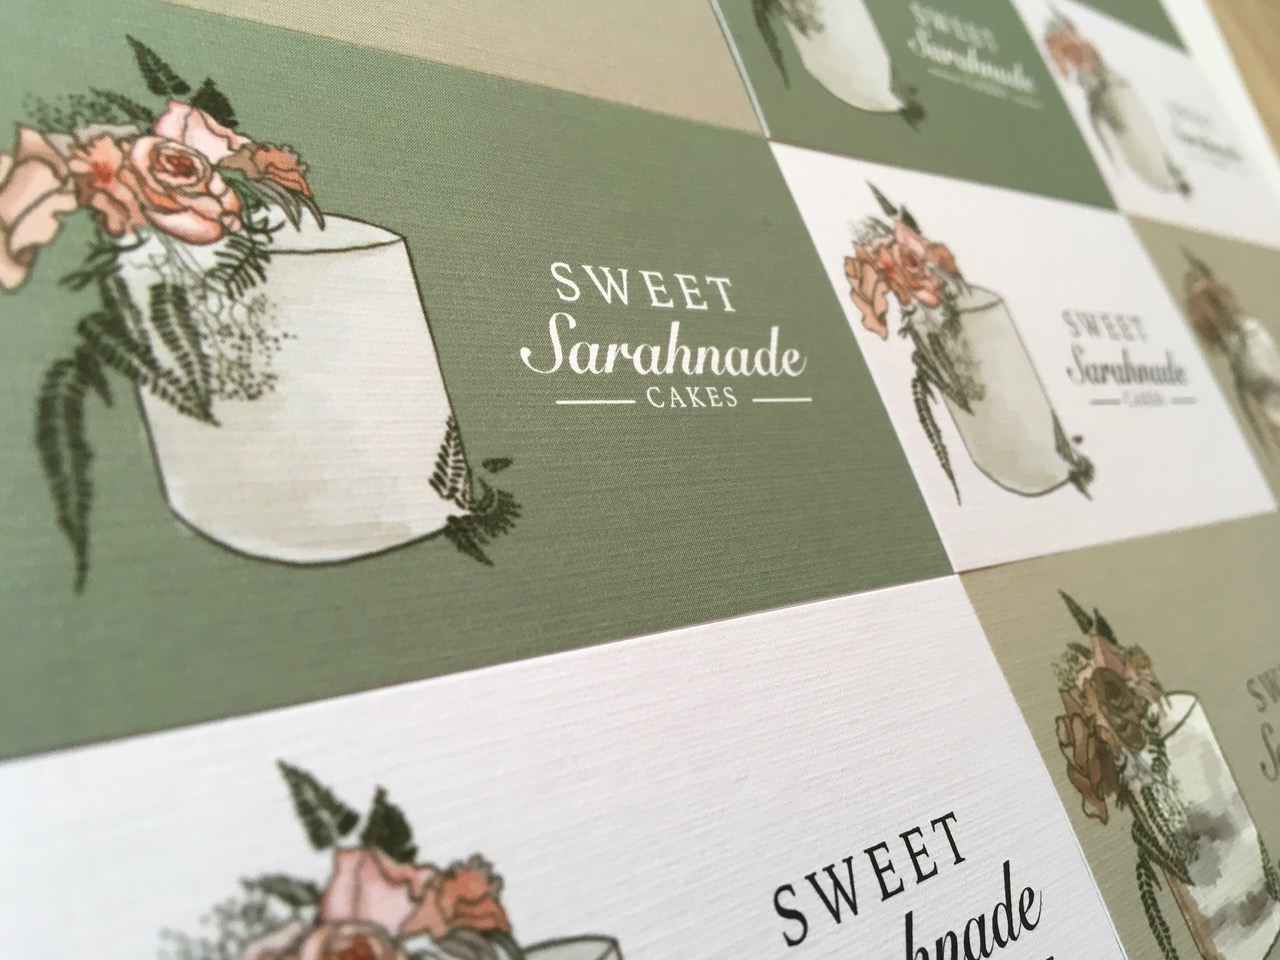 Sweet Sarahnade Cakes business cards